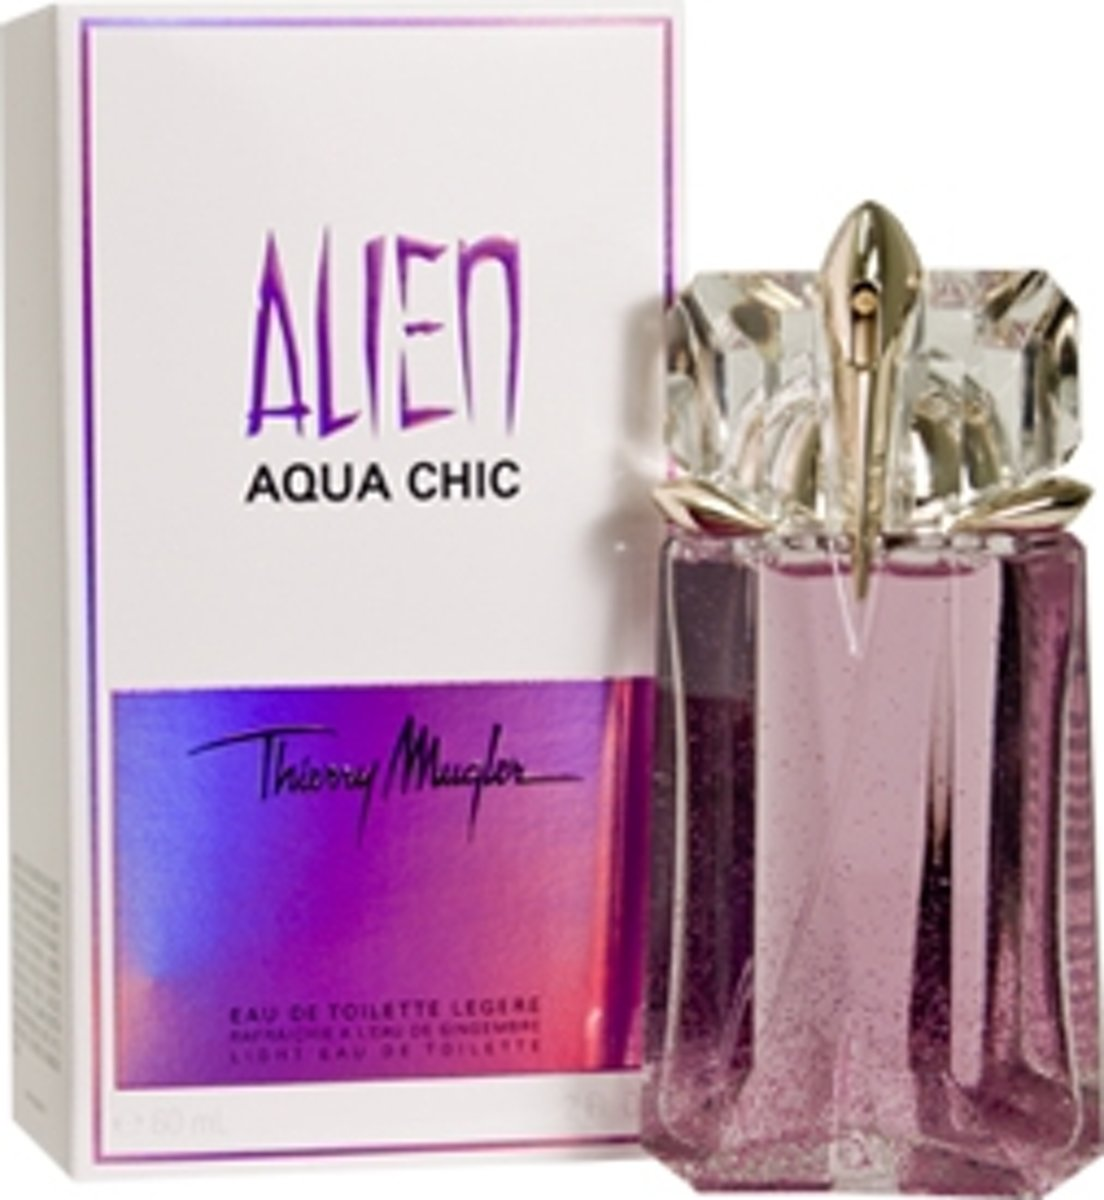 Thierry Mugler Alien Aqua Chic Light - 60 ml - Eau De Toilette kopen